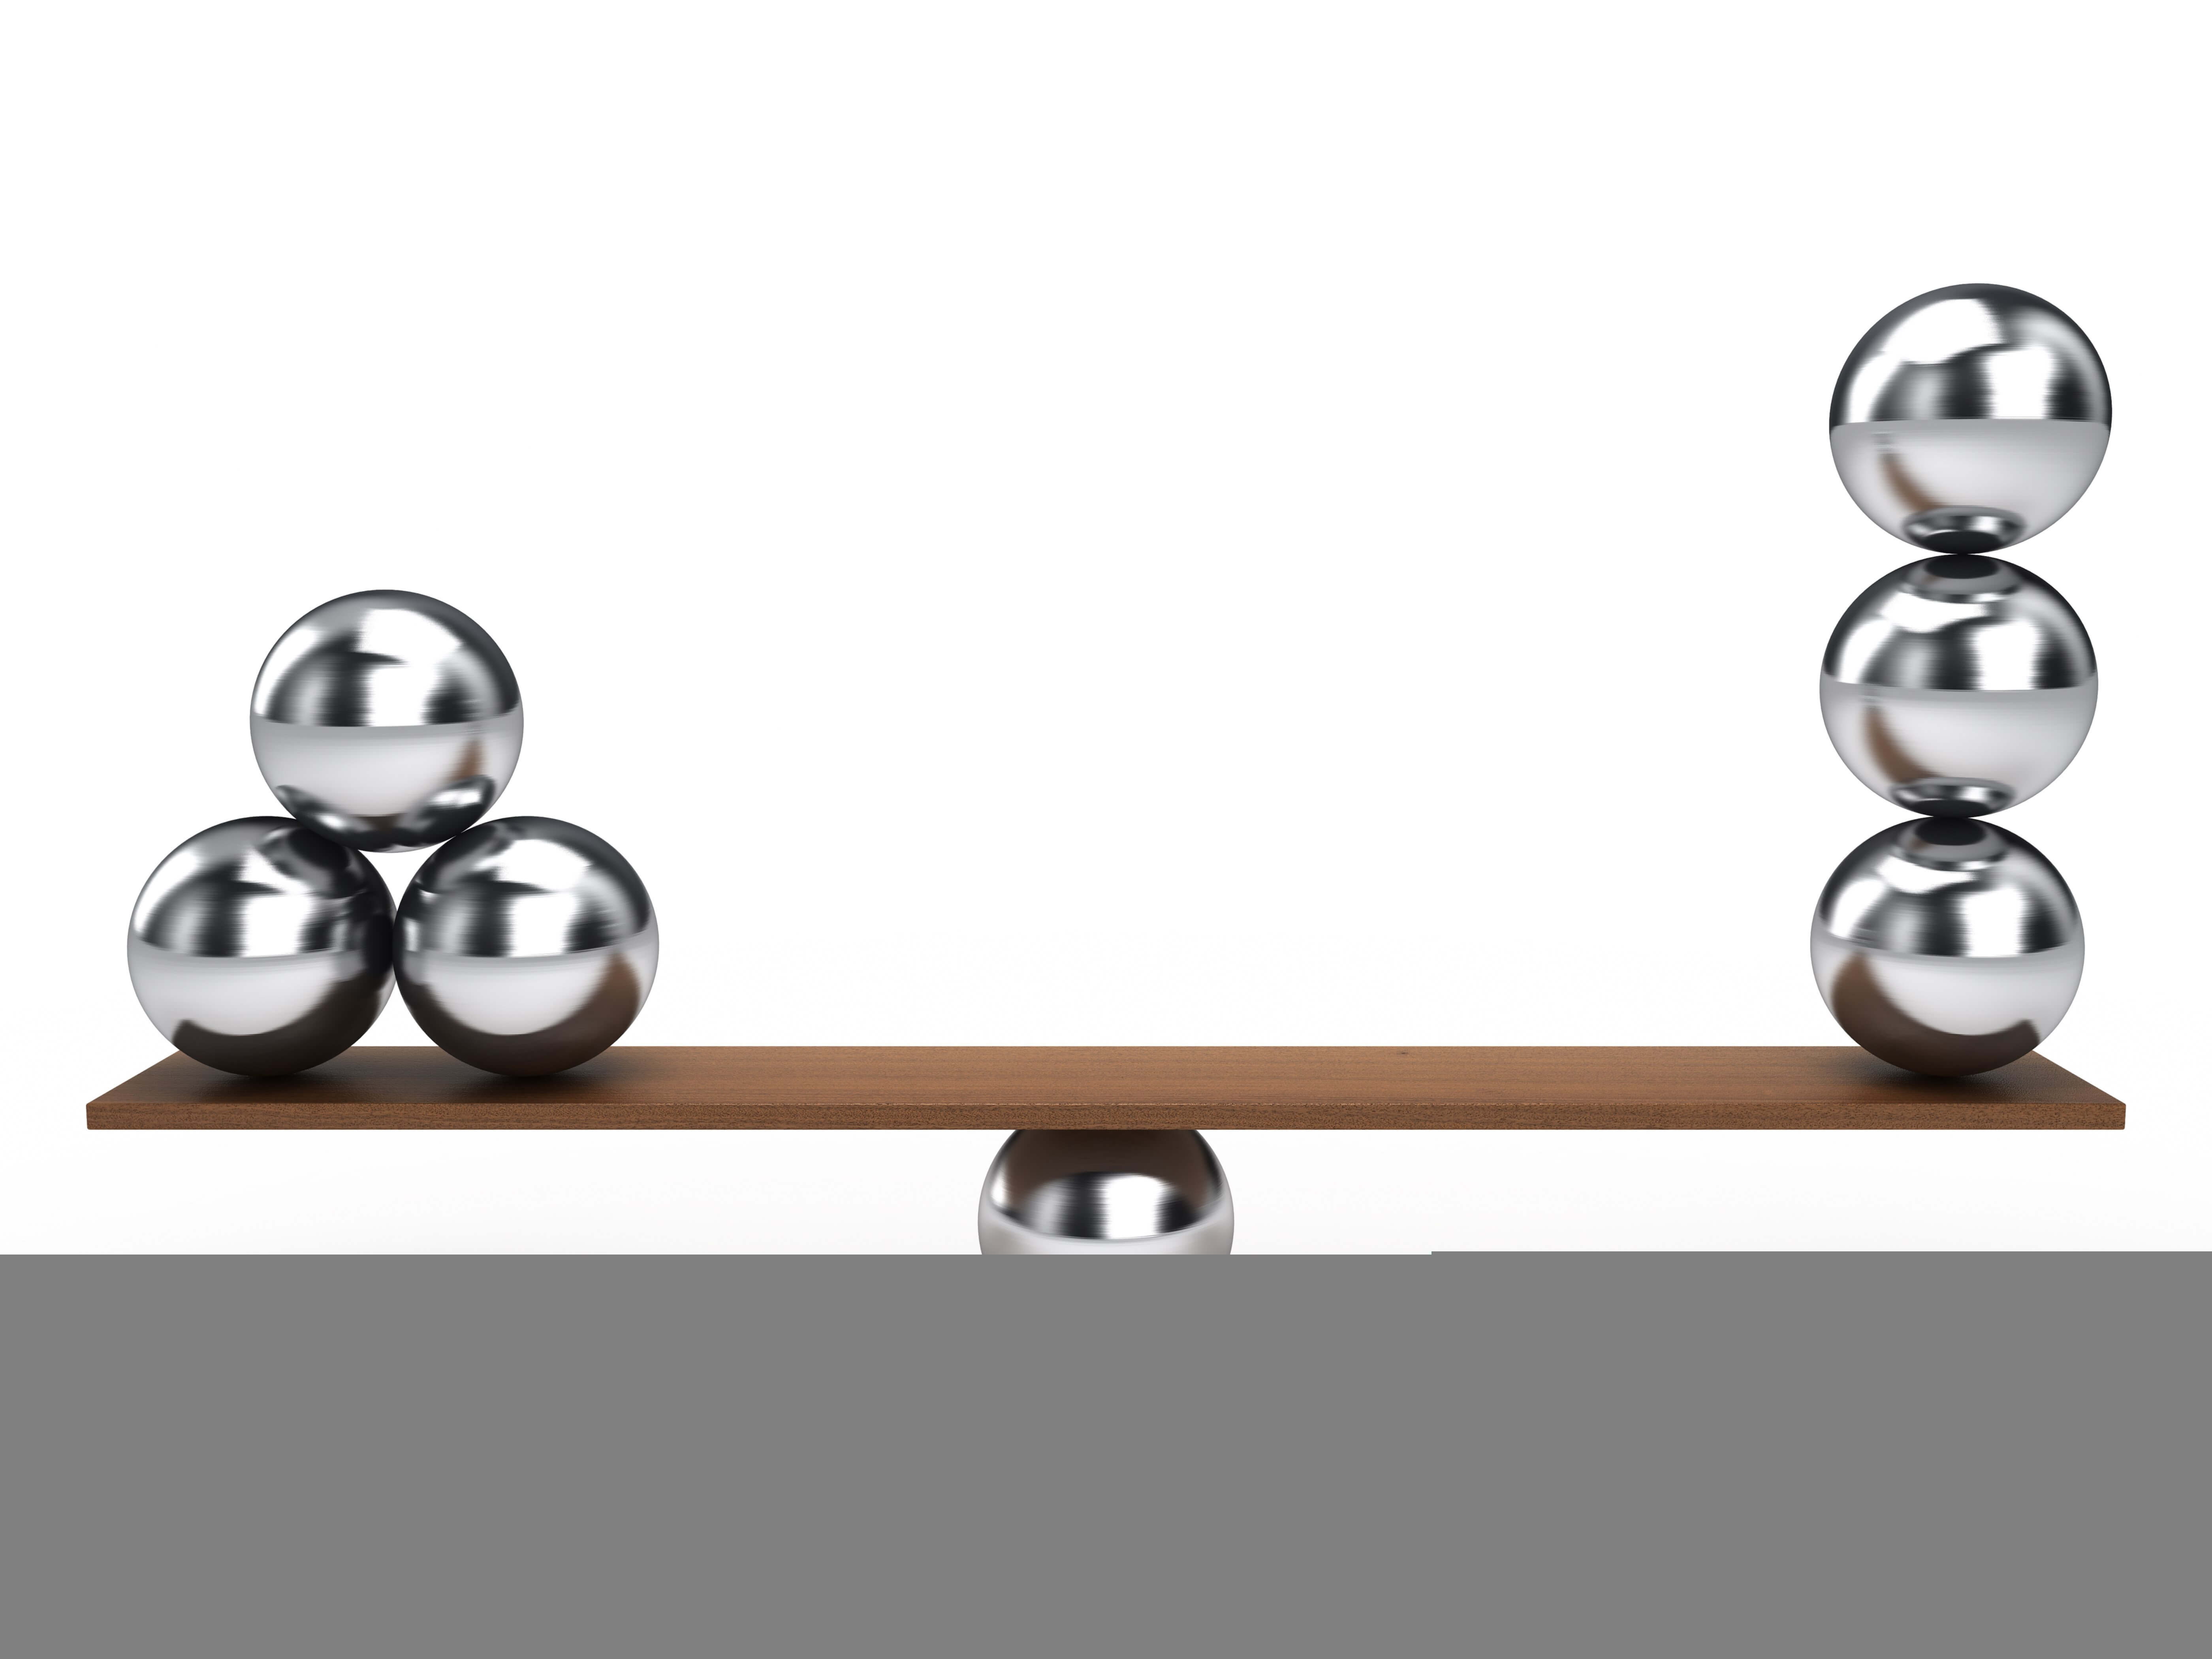 Executive Presence for Multicultural Leaders Means Balancing Personal and Organizational Values